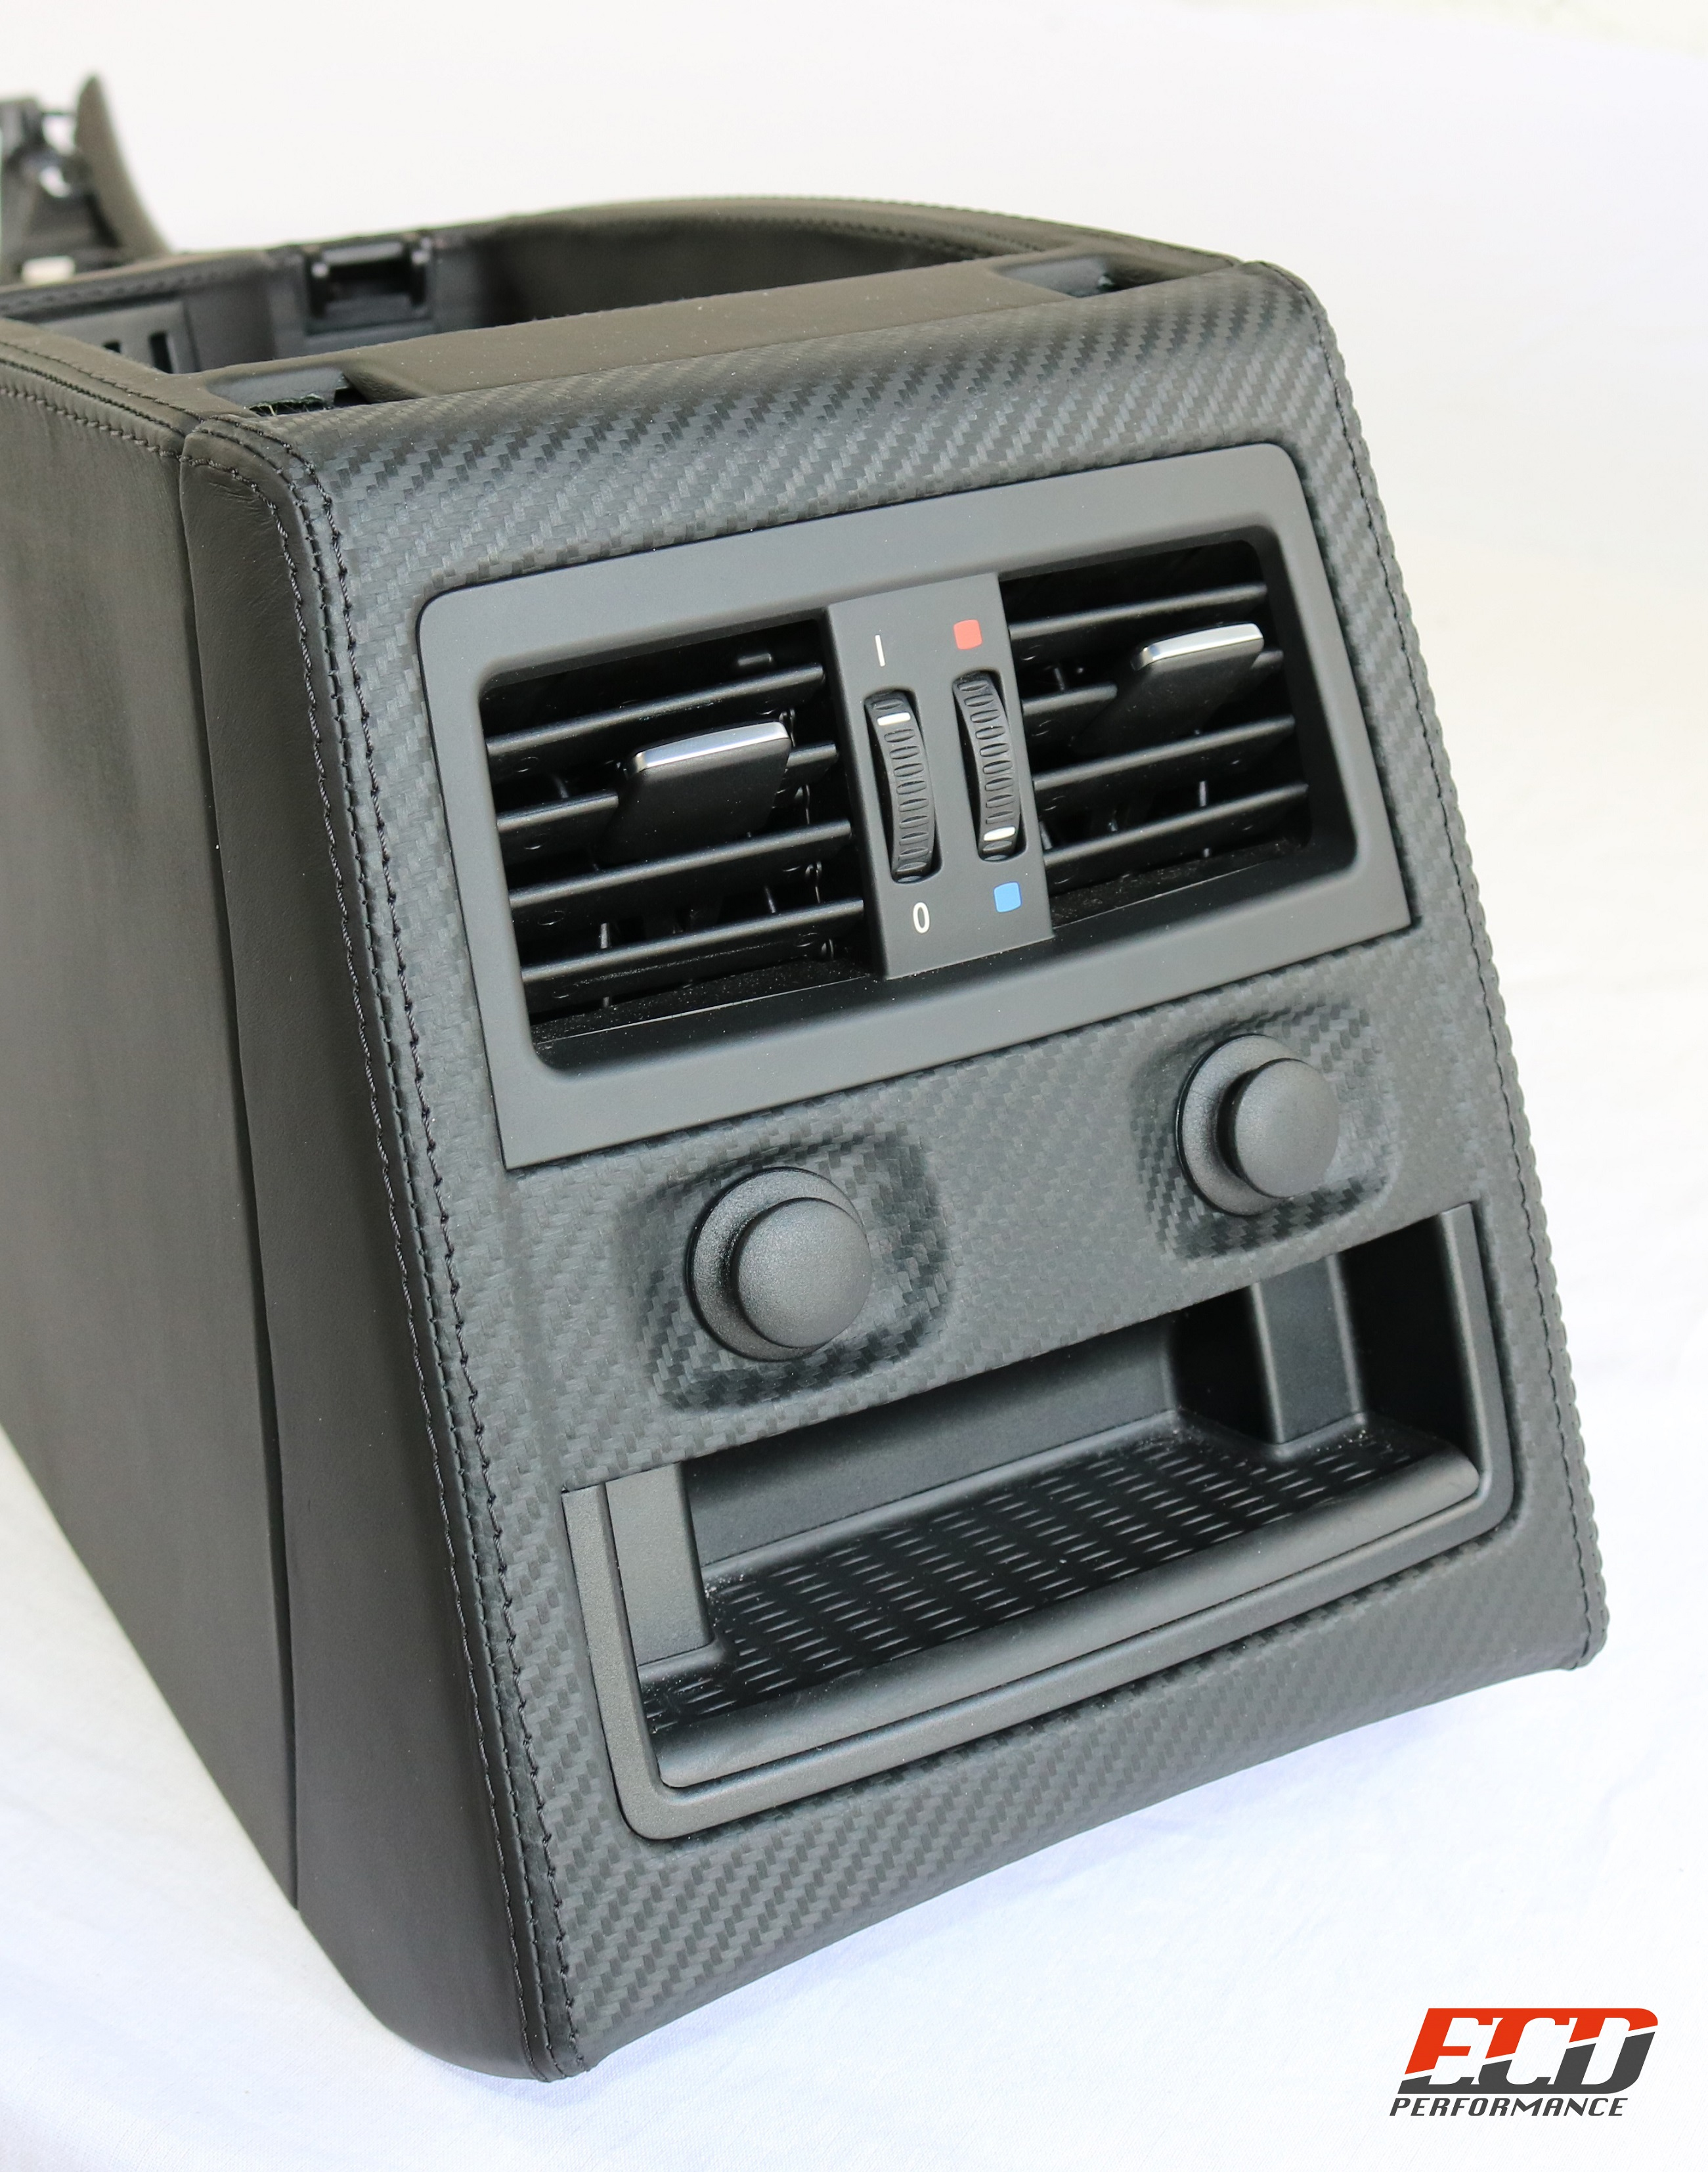 Center console BMW E90 E91 Nappa, Carbon leather, My parts for finishing